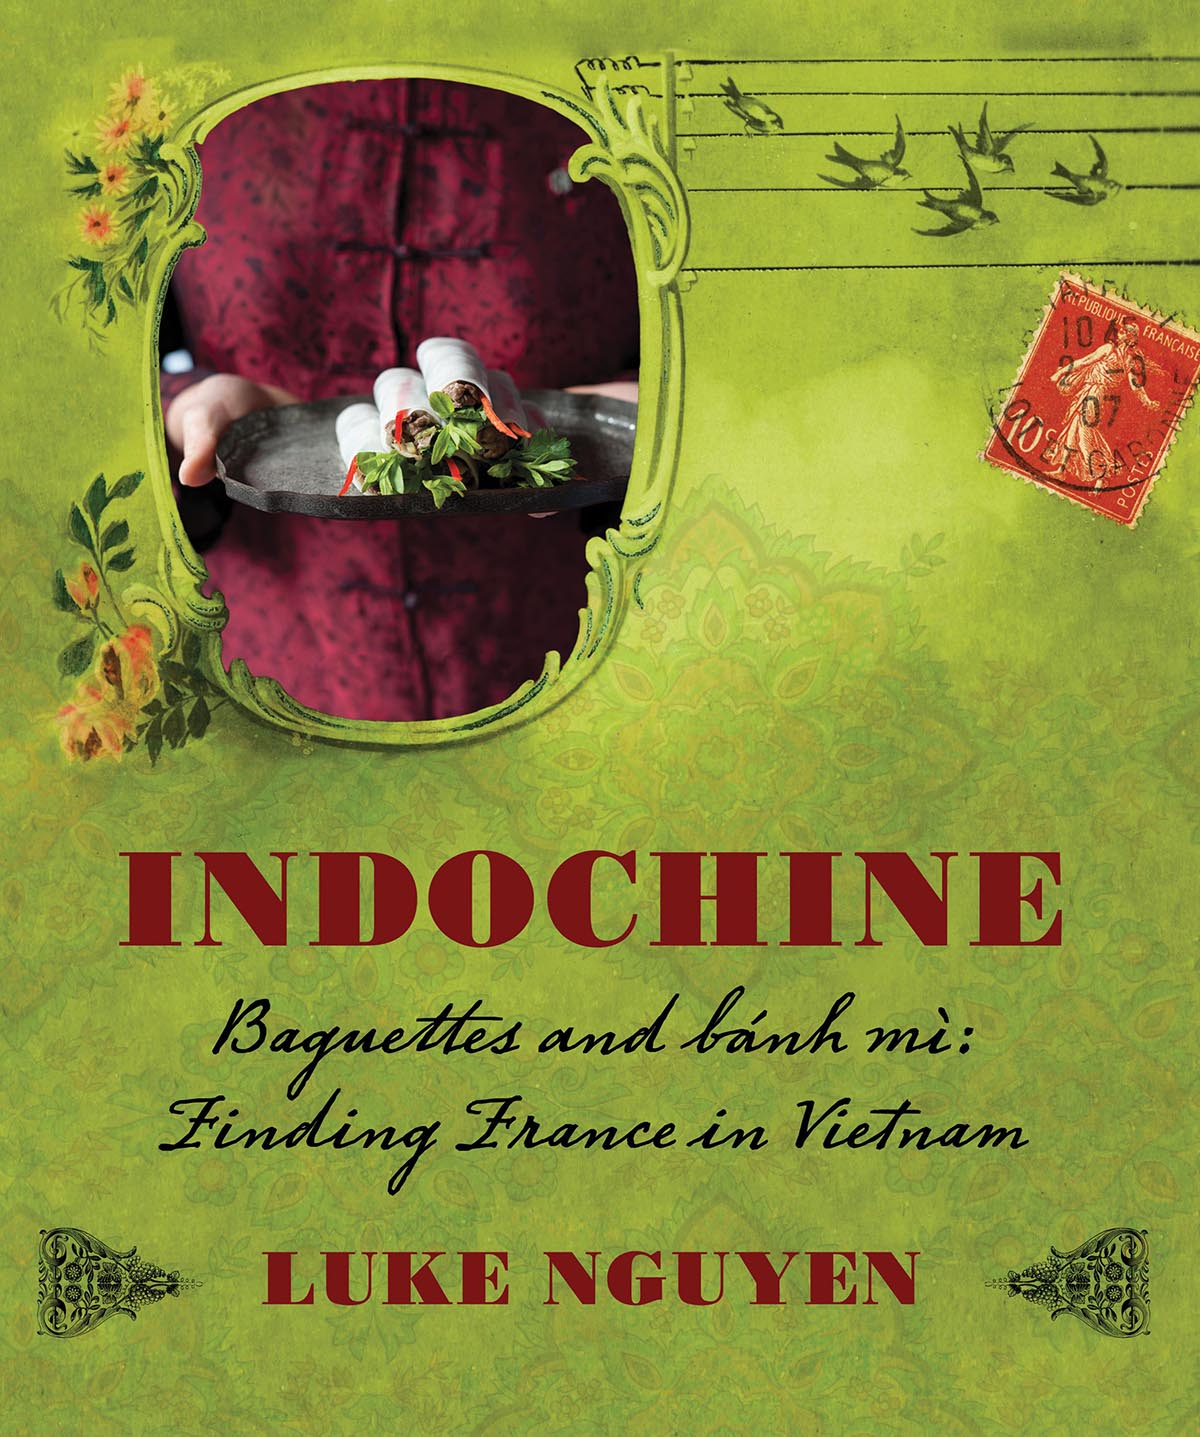 indochine-luke-nguyen-travelmodus